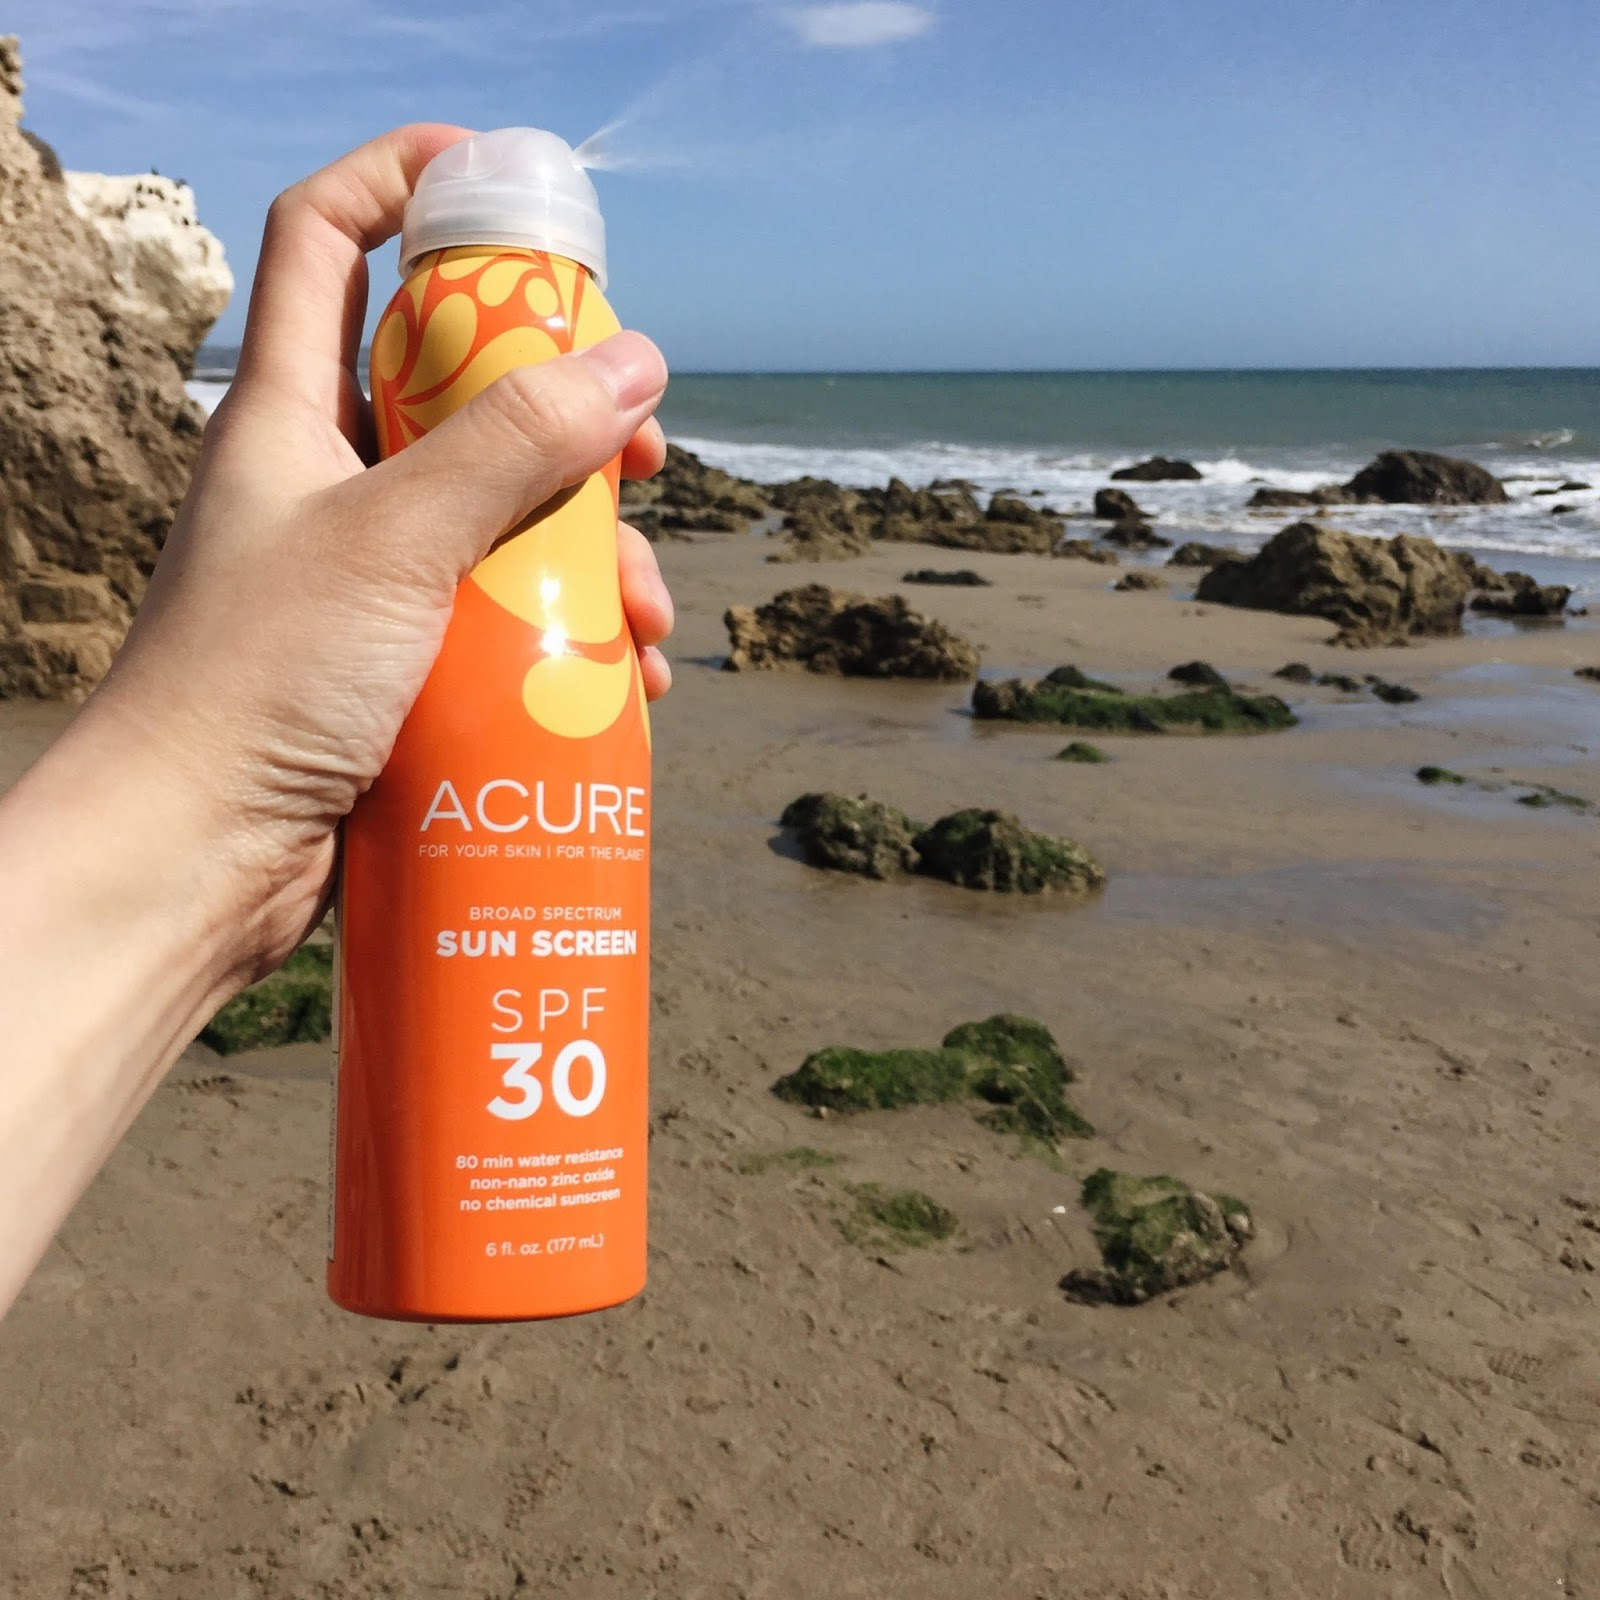 Acure Broad Spectrum SPF 30 Continuous Spray Sunscreen Review natural brand hellolindasau